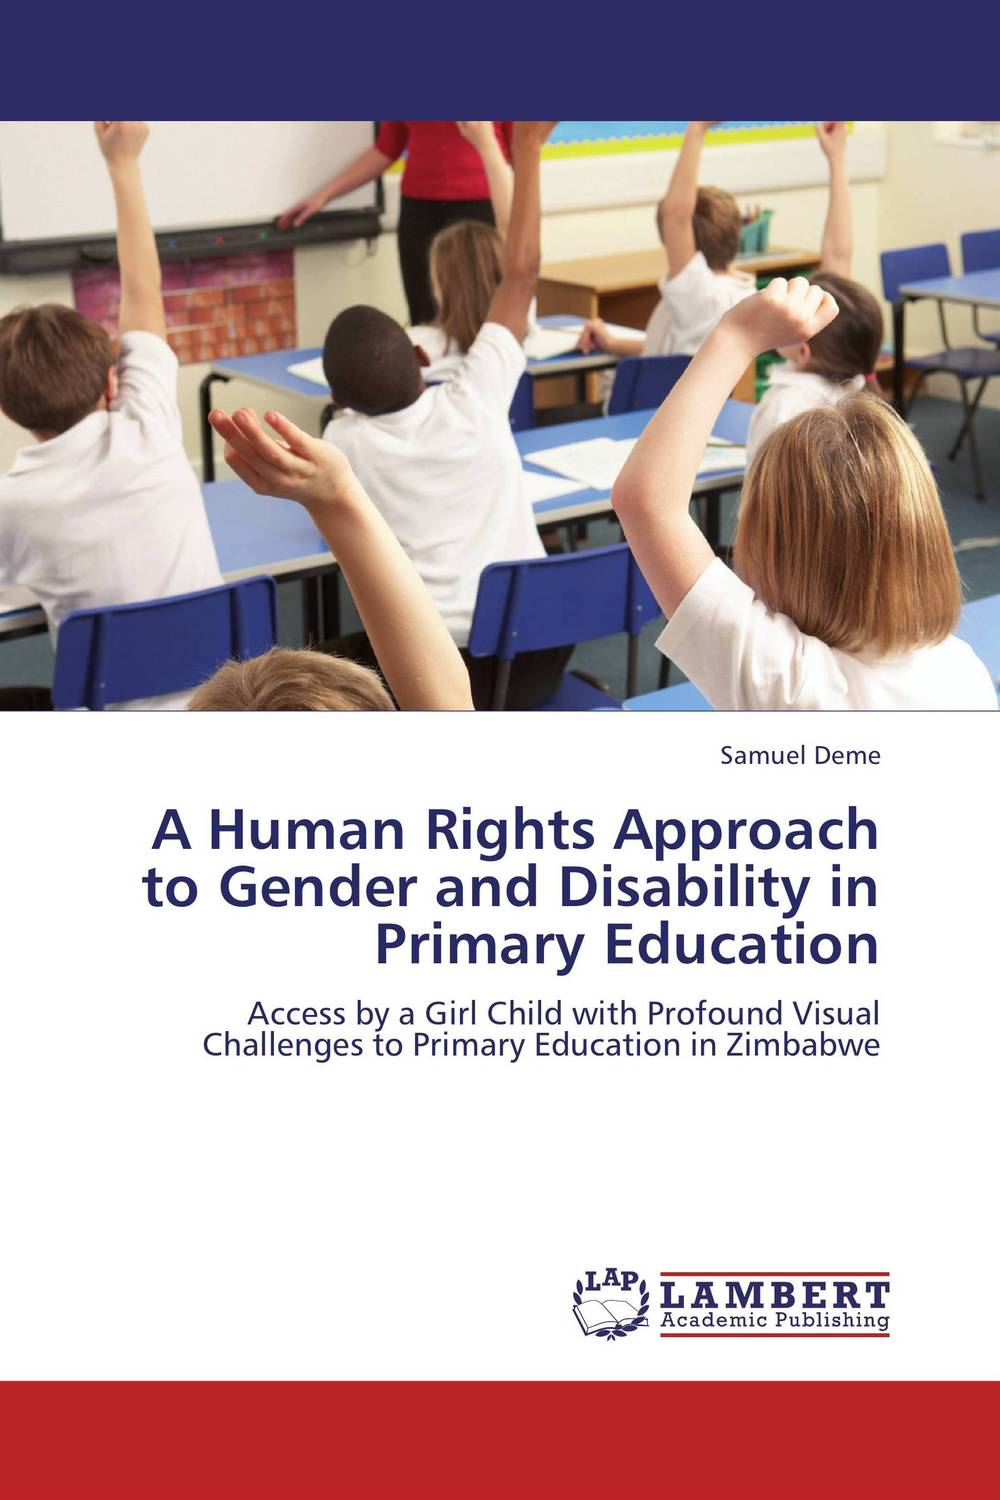 A Human Rights Approach to Gender and Disability in Primary Education foreign policy as a means for advancing human rights